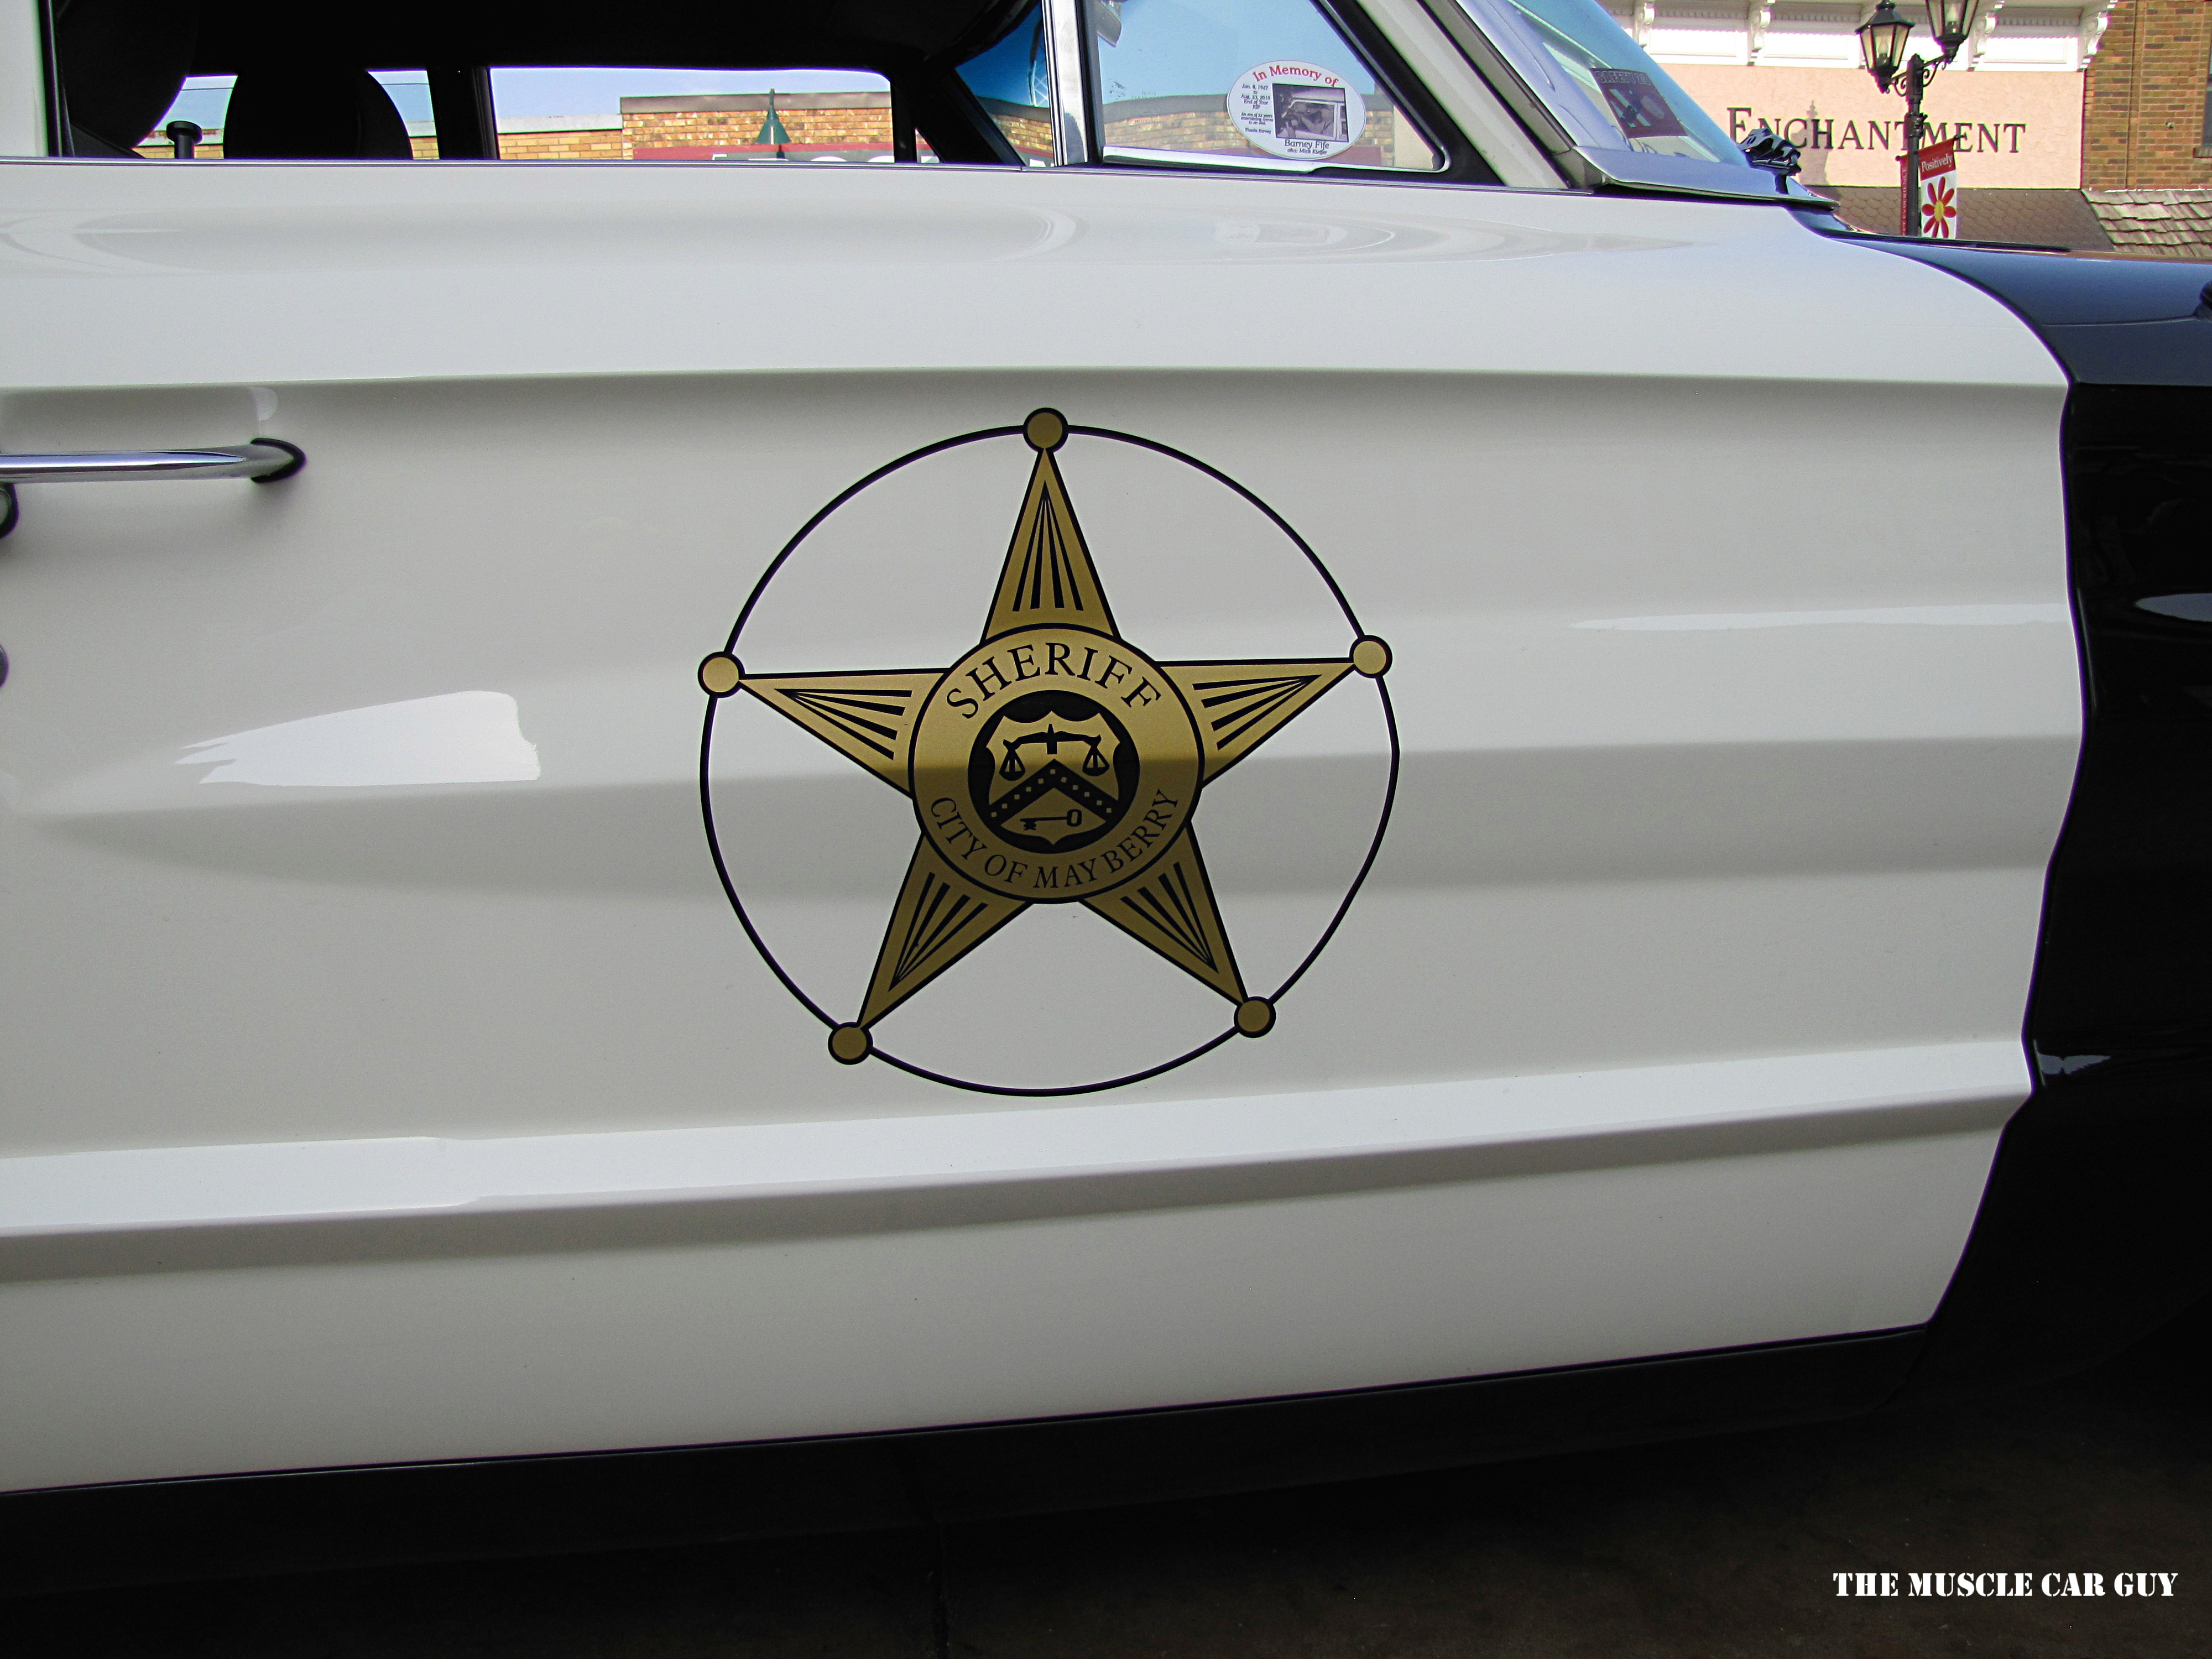 Sheriff City of Mayberry